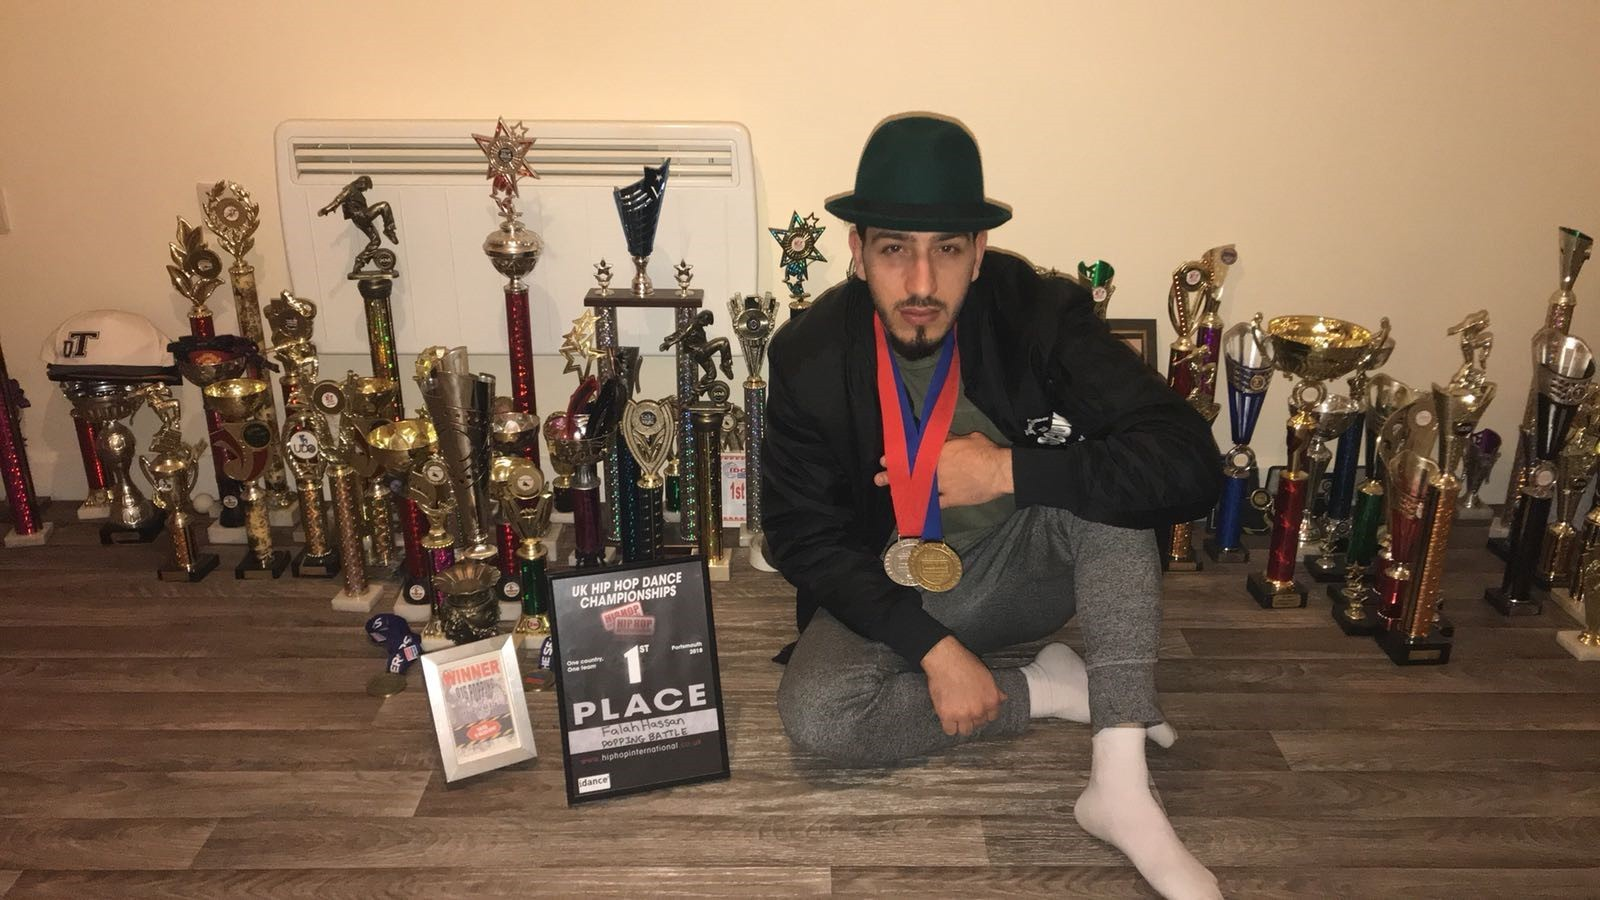 HHI UK: Poppin' Ron picks up gold in hip hop dance competition